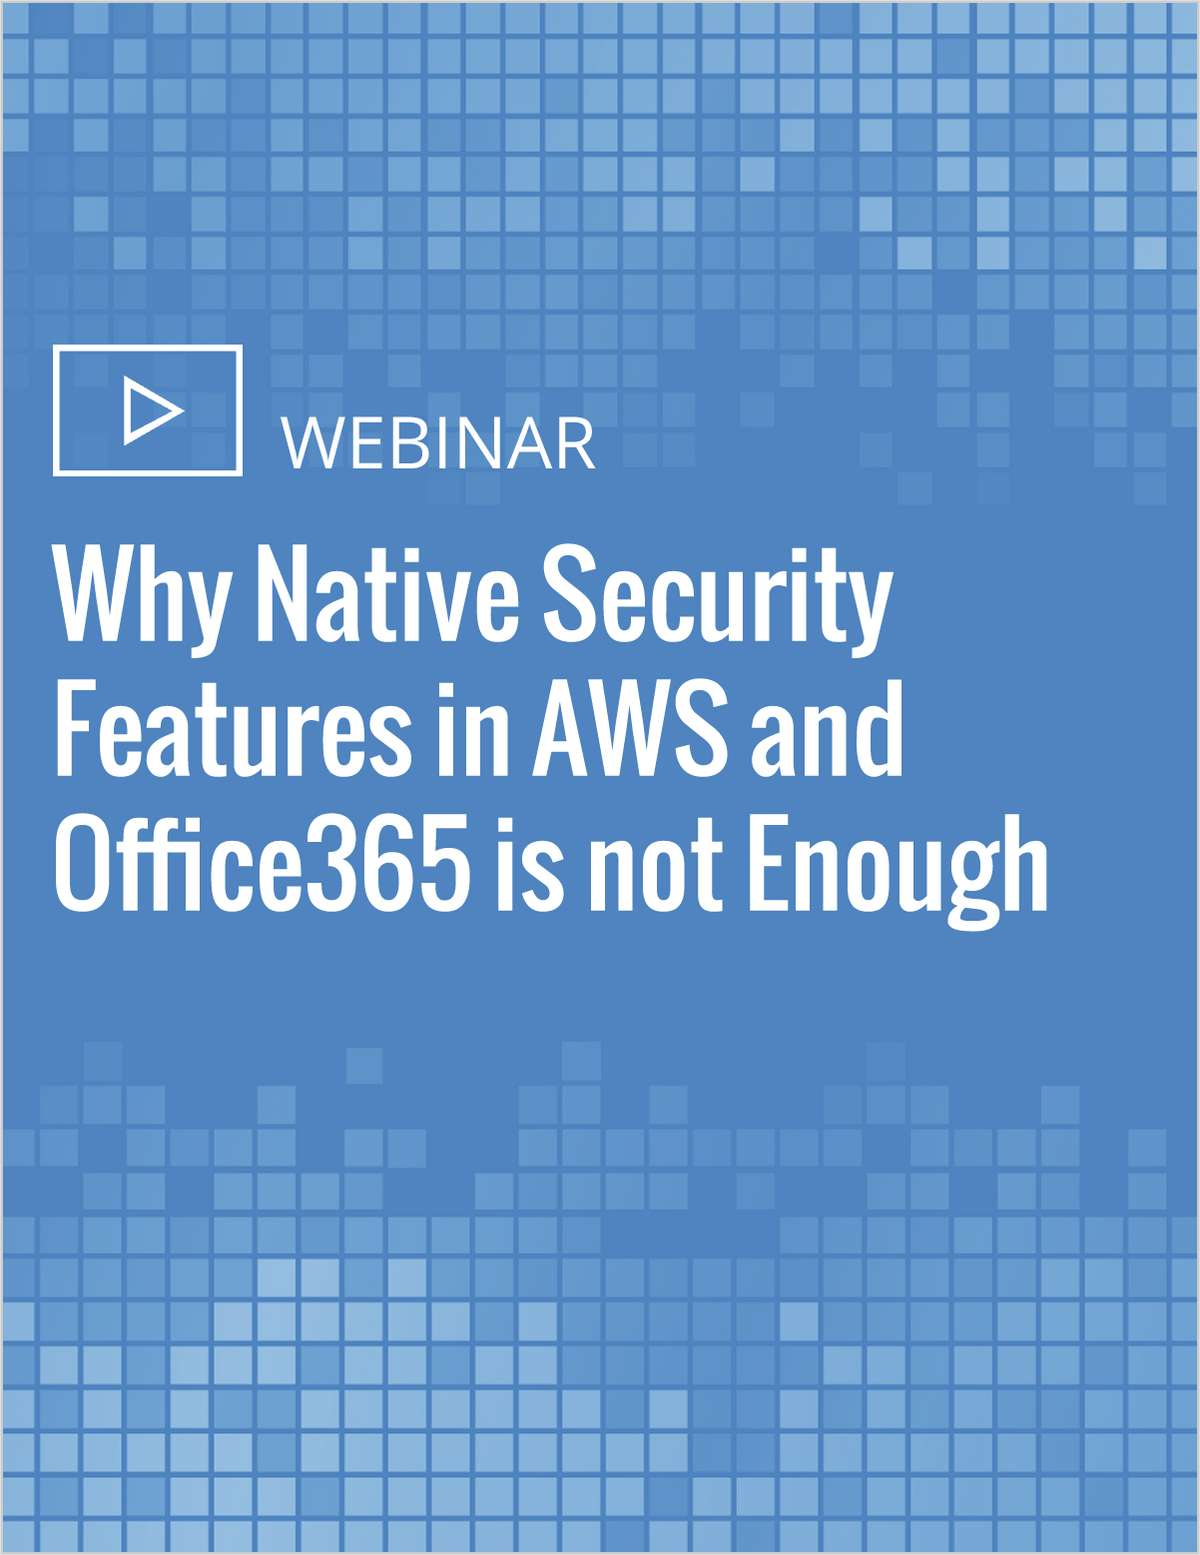 Why Native Security Features in AWS and Office365 is not Enough